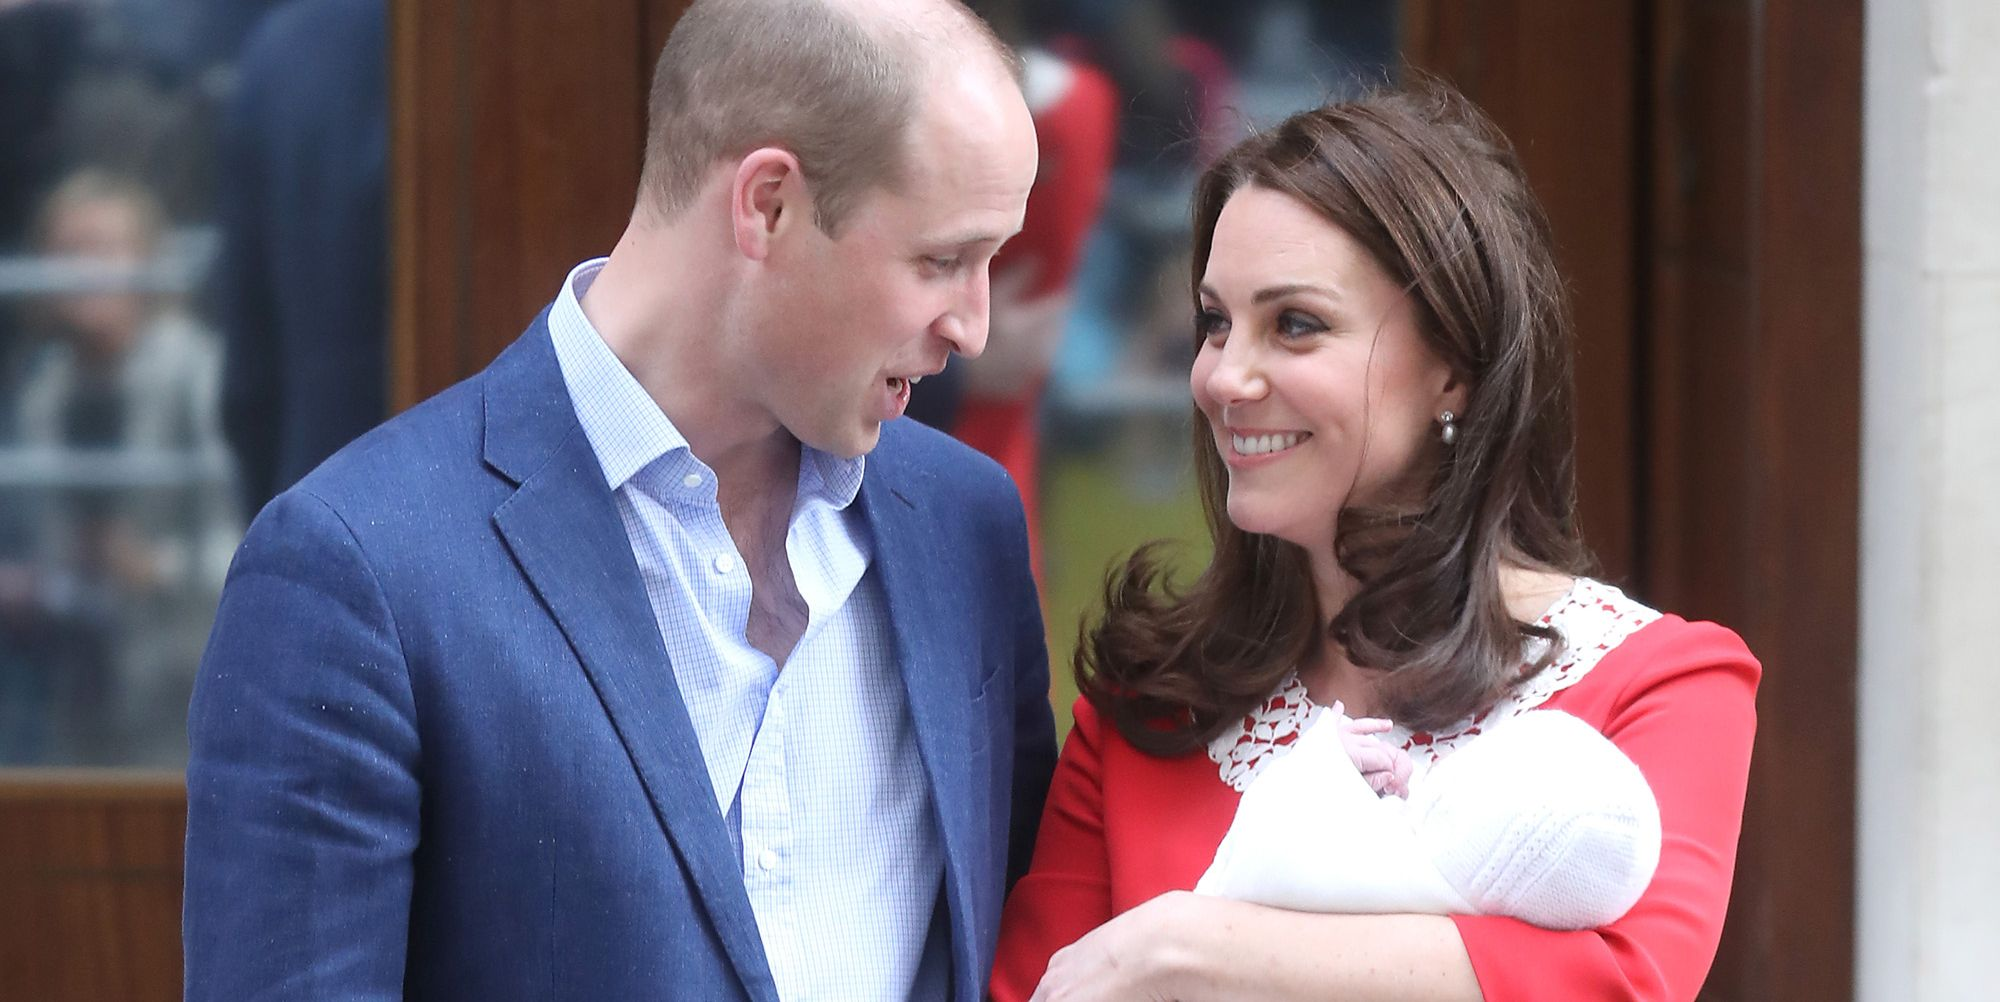 Prince William Maybe Revealed Royal Baby's Name